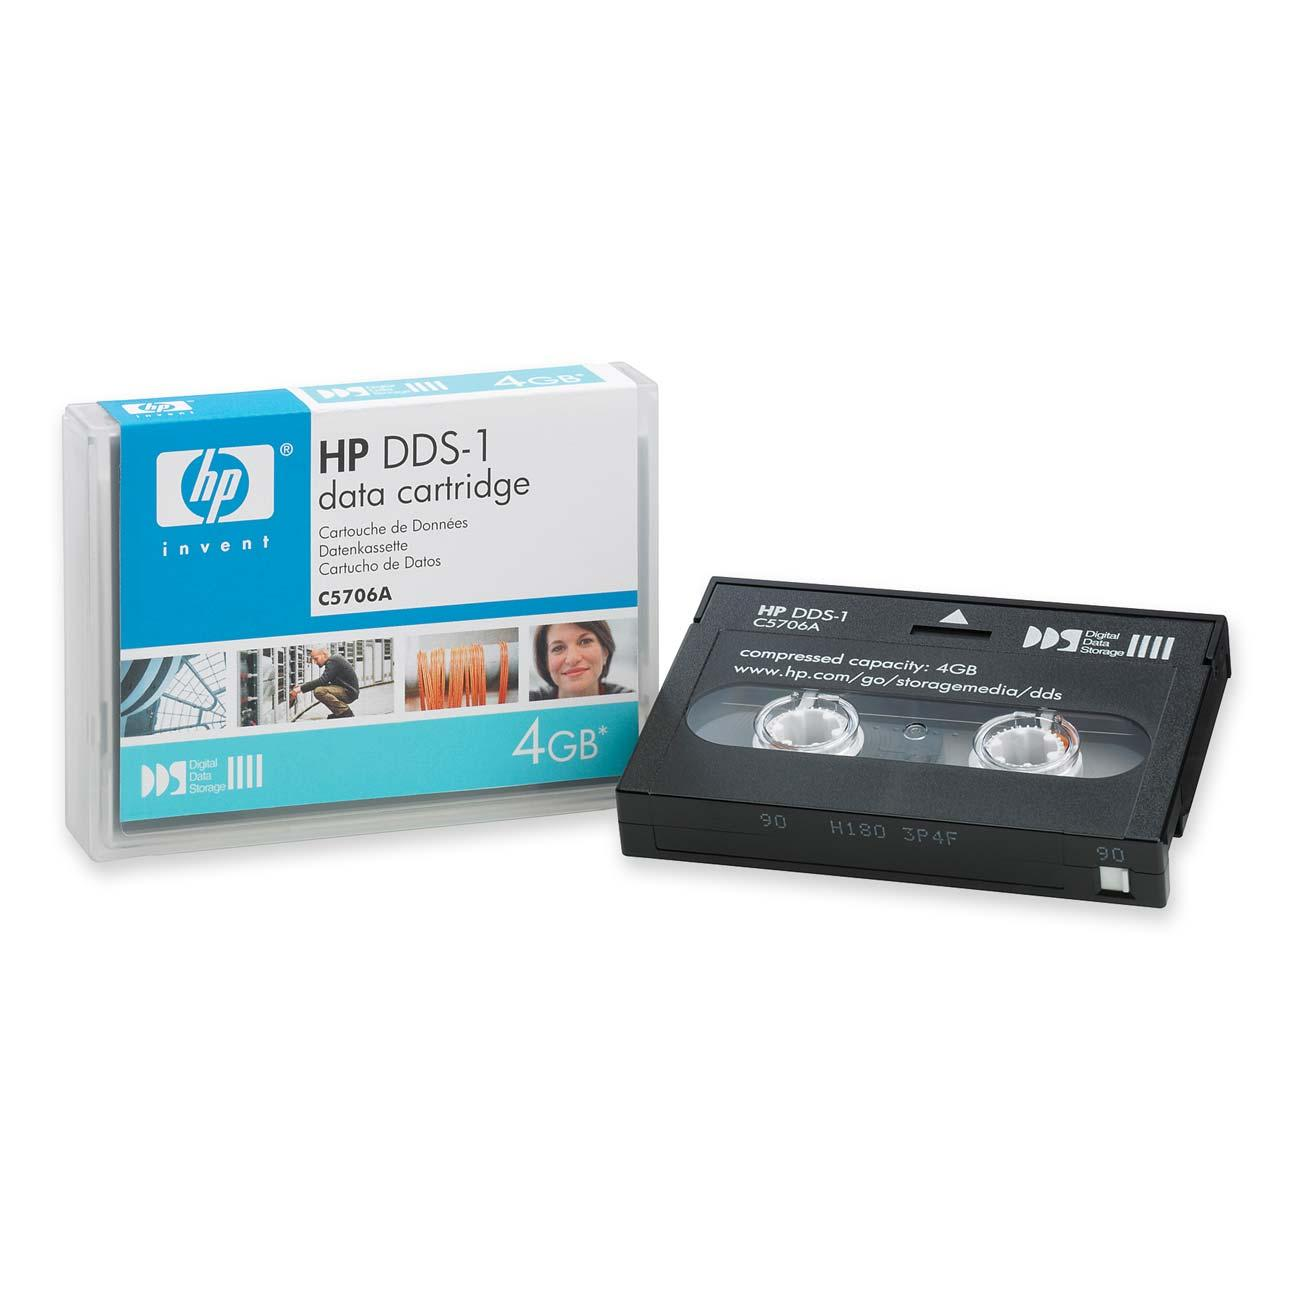 HP TAPE CARTRIDGE - HP DAT / DDS  (C5706A ,C5707A ,C5708A , C5718A )